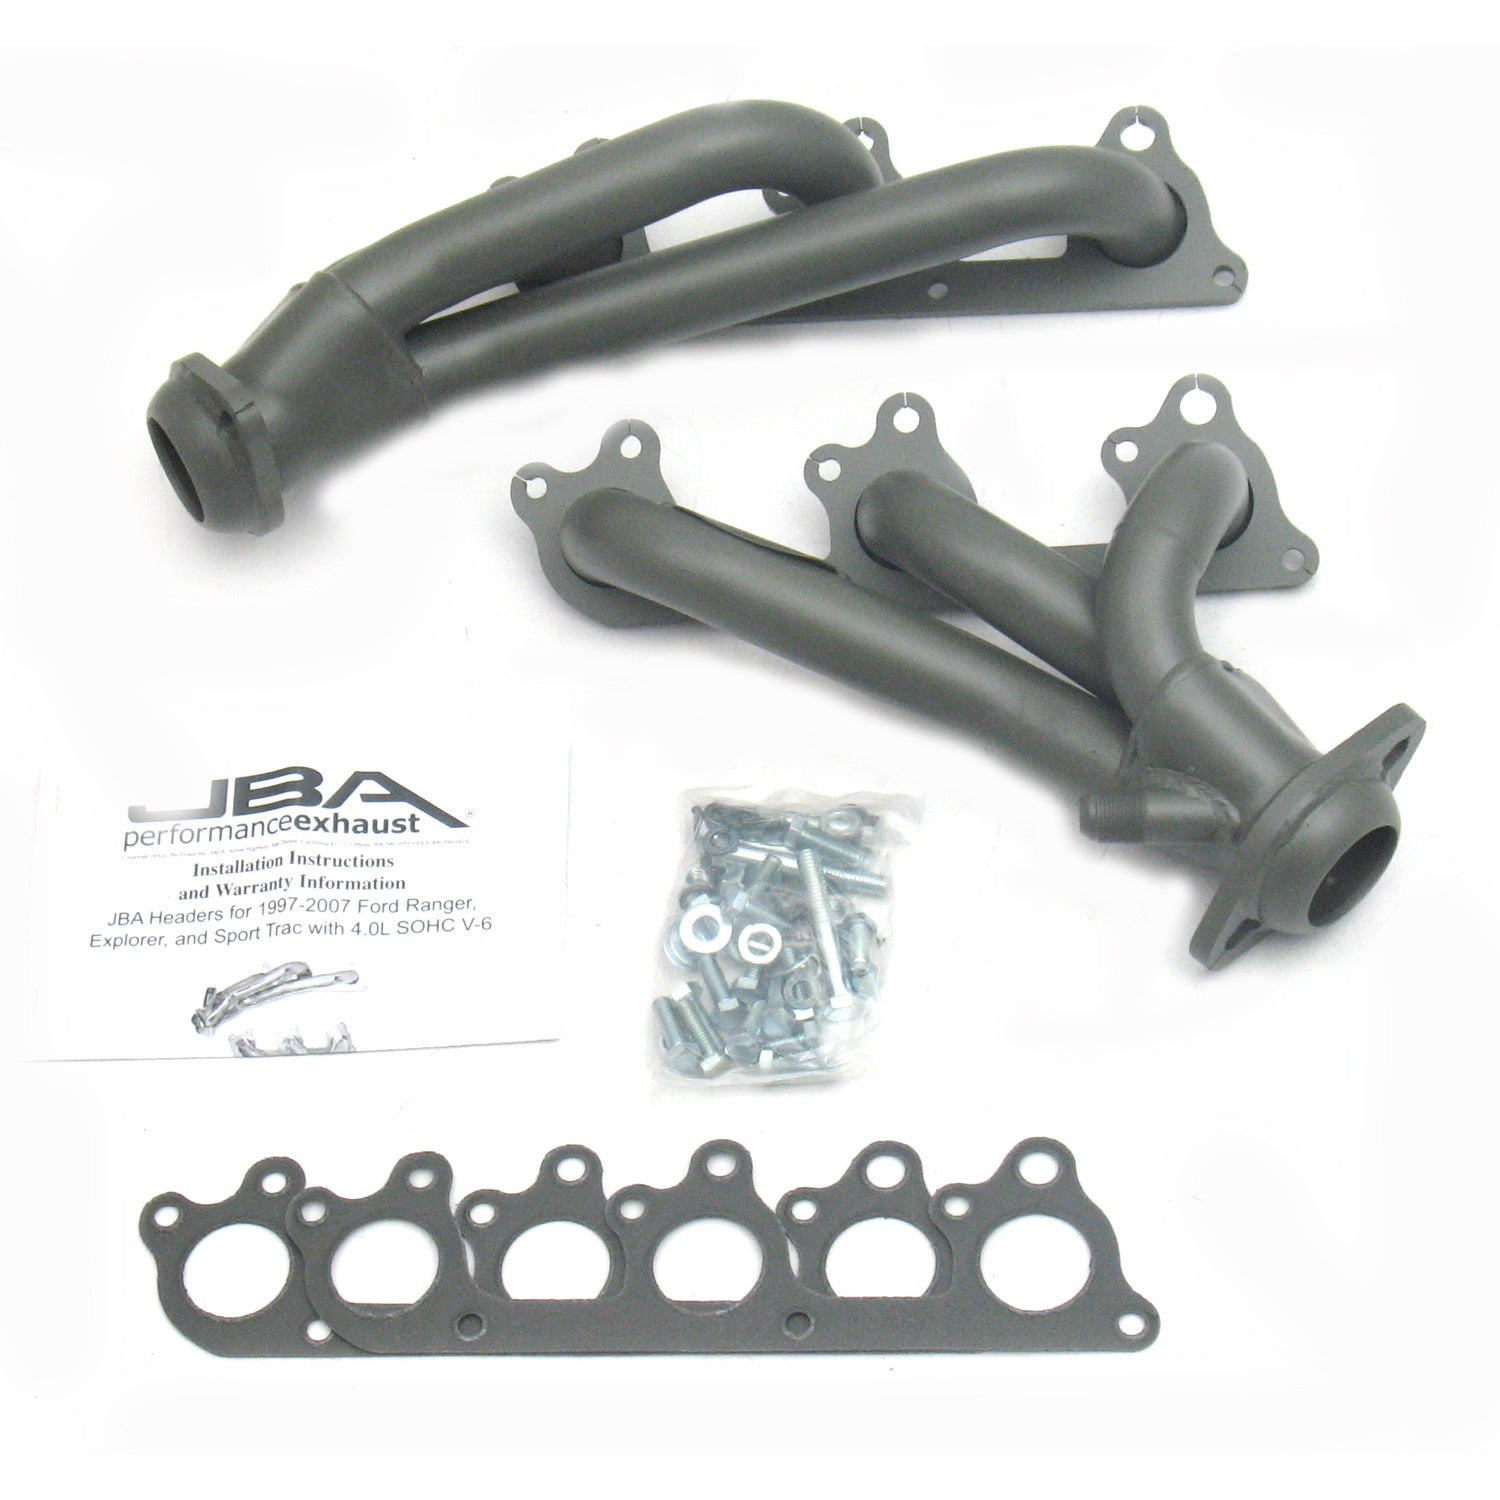 "JBA Performance Exhaust 1674S-1JT 1 1/2"" Header Shorty Stainless Steel 97-11 Ranger/Explorer 4.0L SOHC Titanium Ceramic"